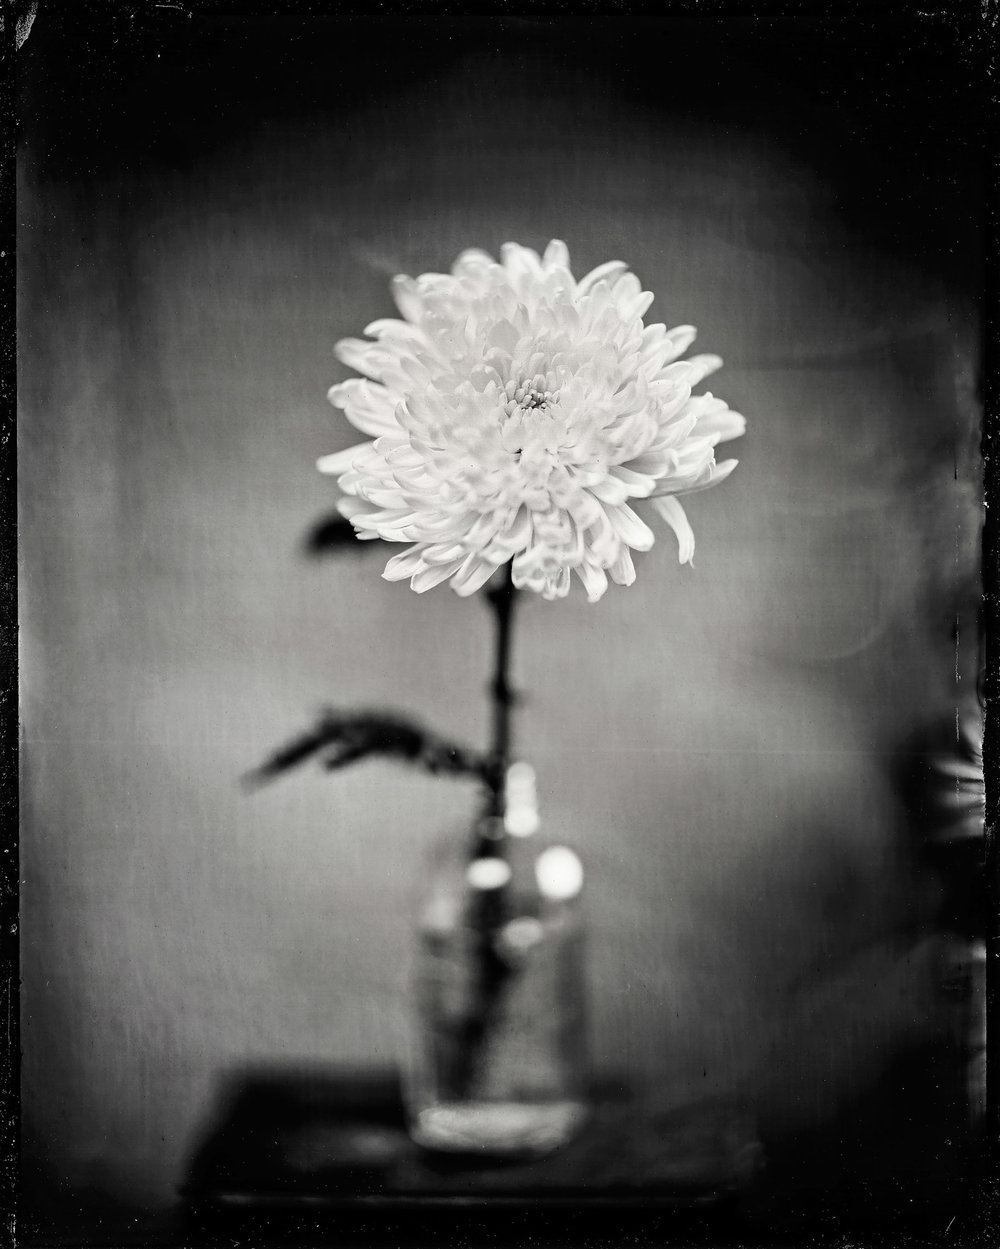 Title : Chrysanthemum 12.29.18 By: Michael Marano    www.973studio.com